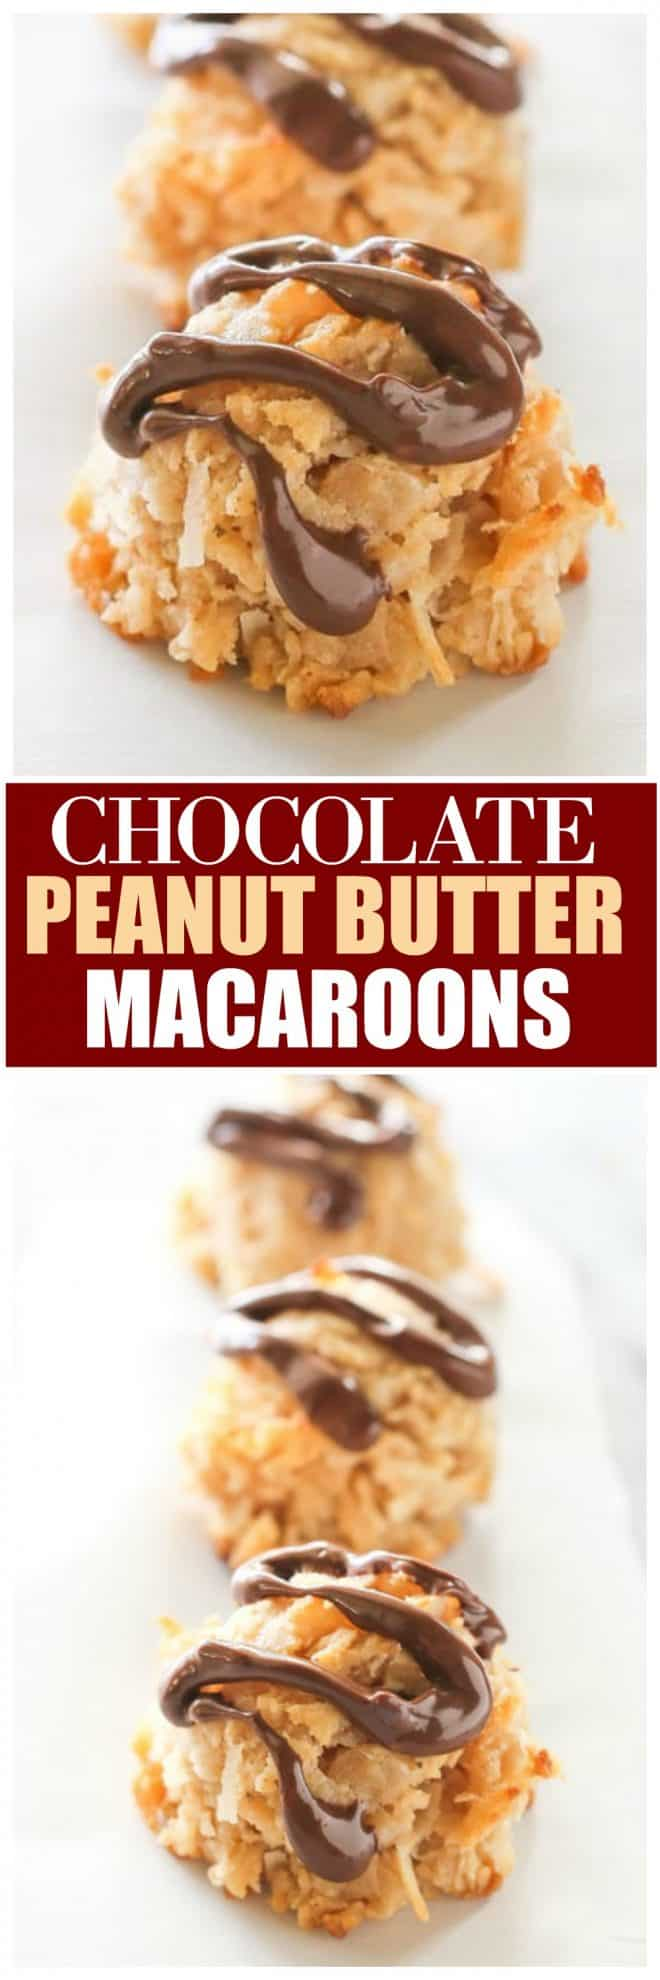 Chocolate Peanut Butter Macaroons